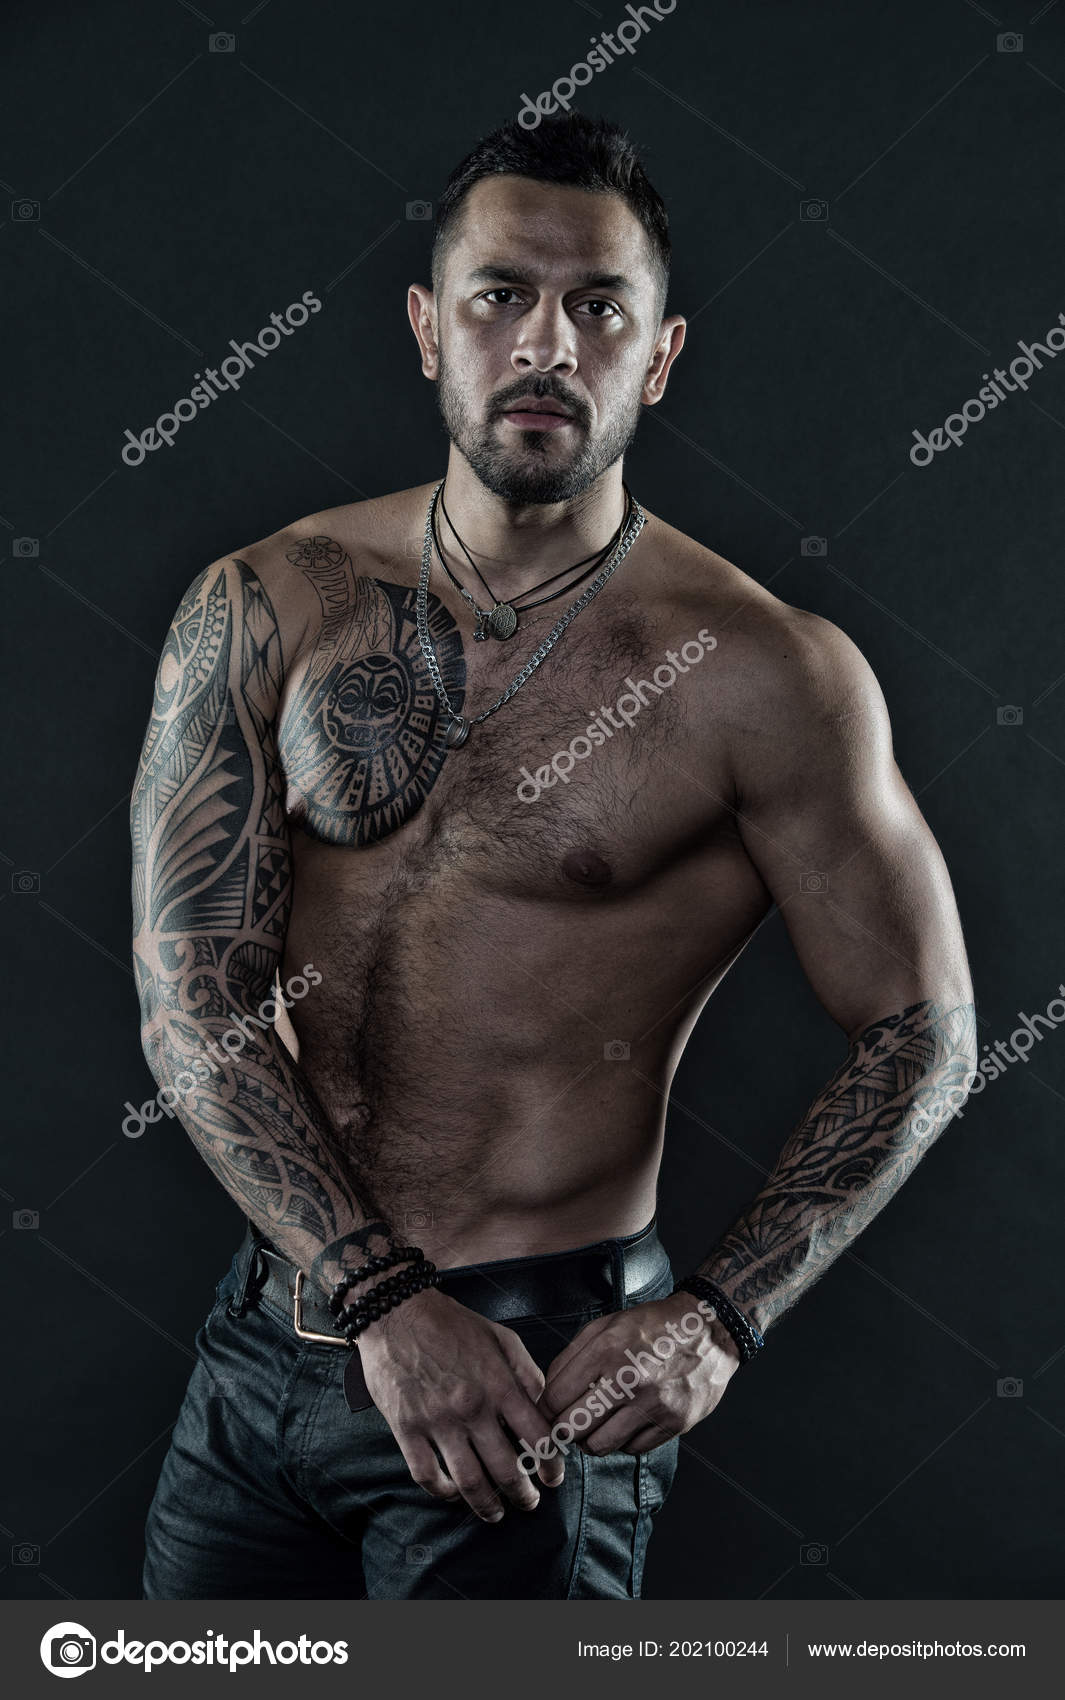 9f4f5ee41 Bearded man with tattooed body. Man with sexy bare torso in jeans. Tattoo  model with six pack and ab. Athlete or sportsman with muscular chest and  belly.